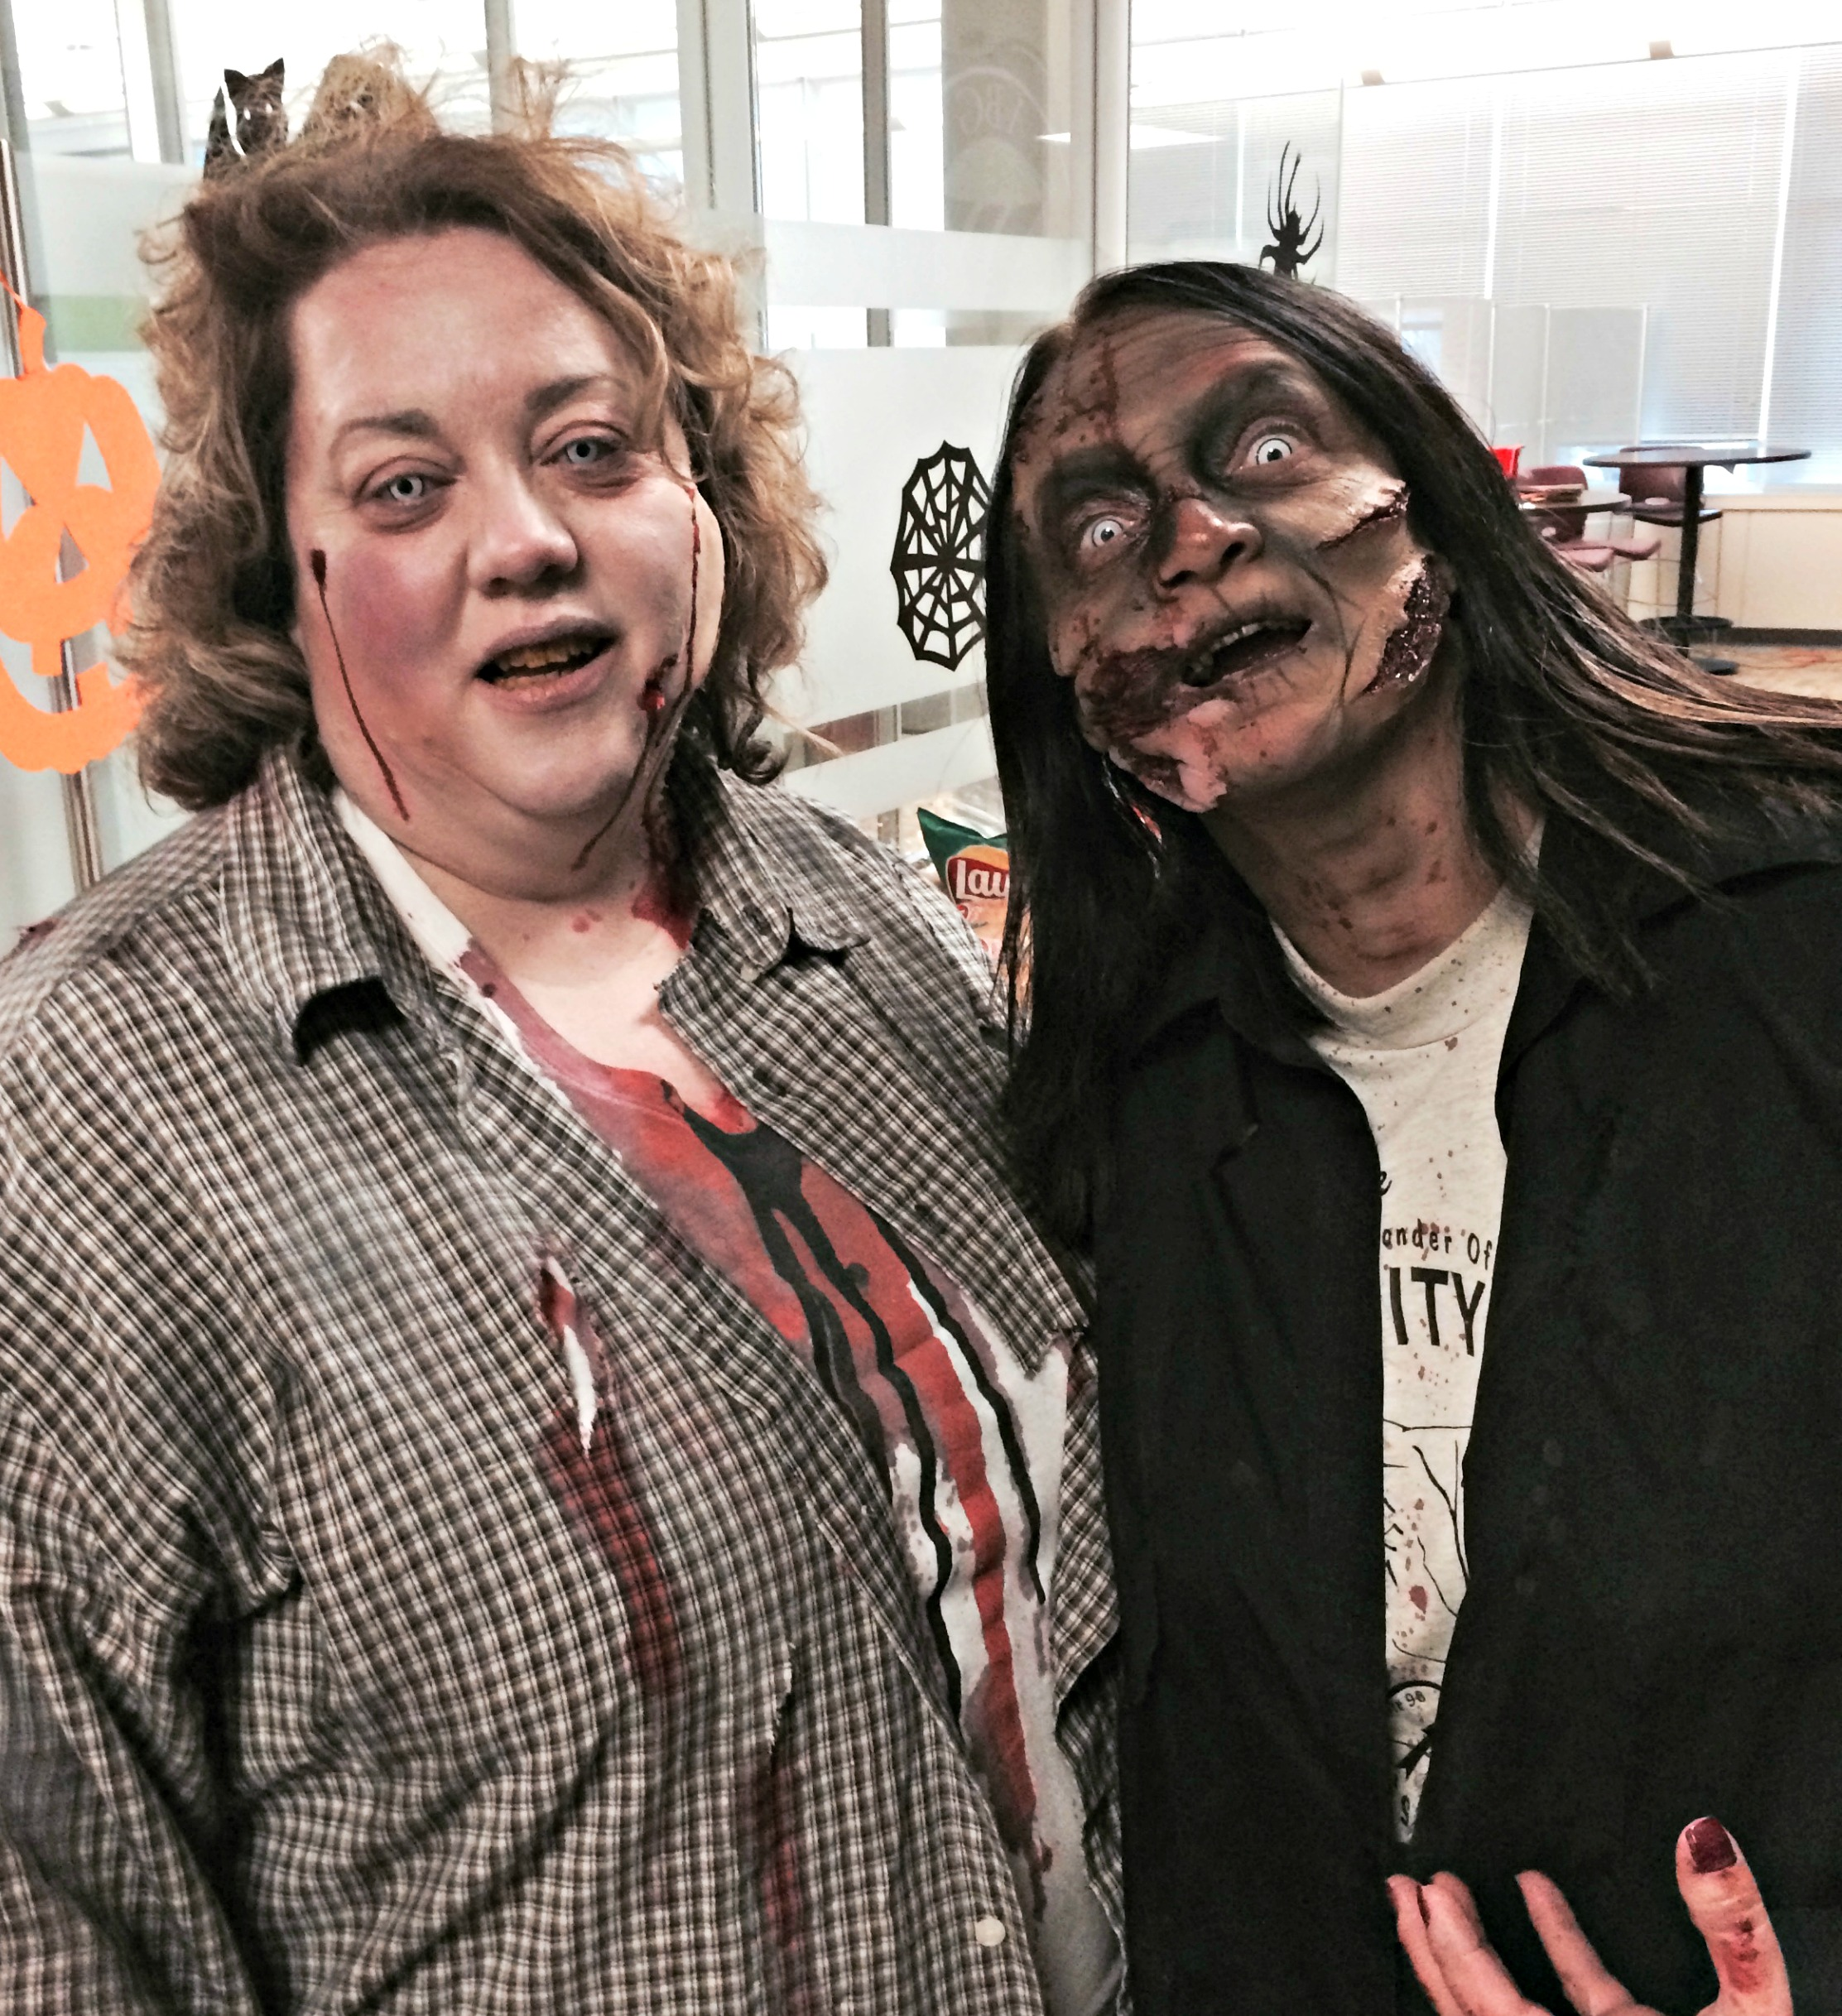 Zombies Halloween Costume I ABG Capital Blog